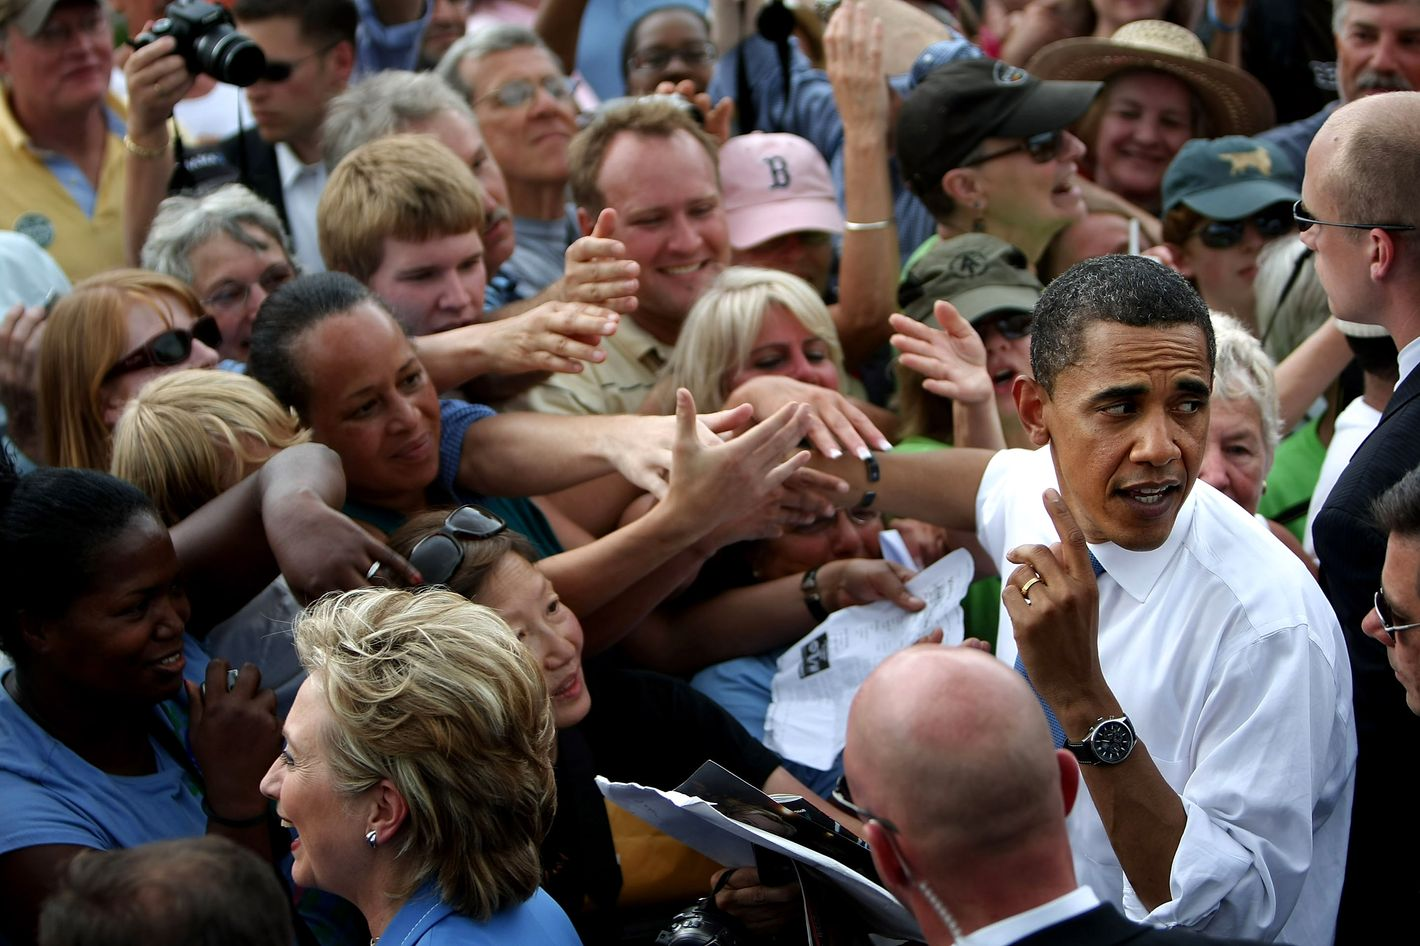 Democratic presidential candidate Sen. Barack Obama (D-IL) greets the crowd after appearing with Sen. Hillary Rodham Clinton (D-NY)  June 27, 2008 in Unity, New Hampshire.